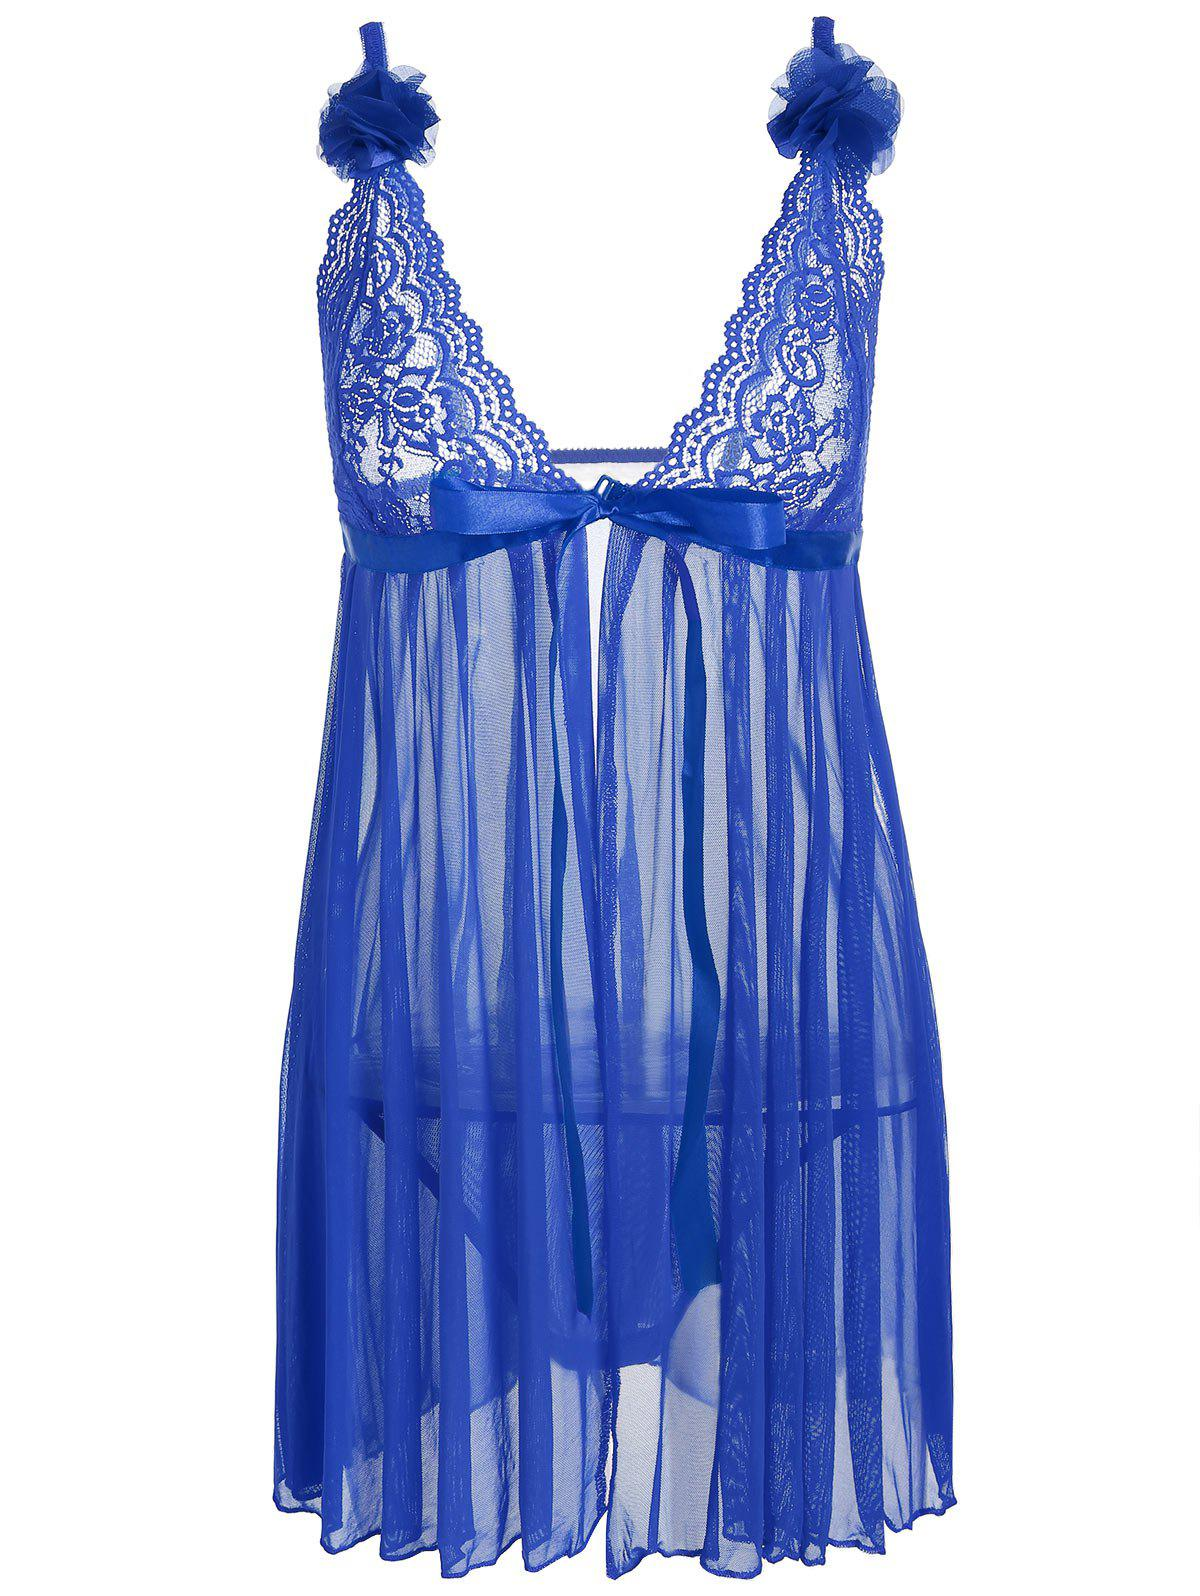 Mesh Lace Panel Sheer Slip Babydoll - BLUE ONE SIZE